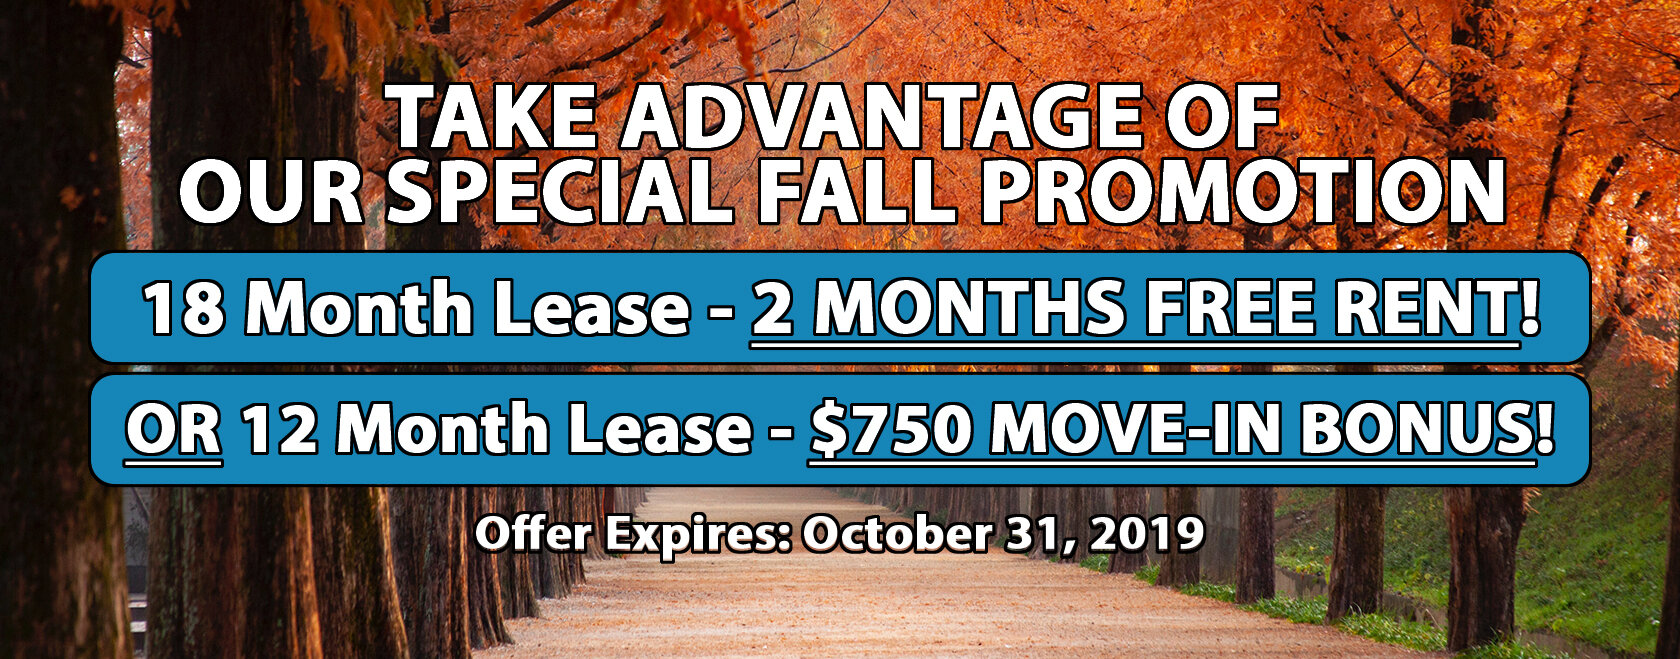 18 Month Lease - Fall Promotion - Offer Expires October 31-2019.jpg